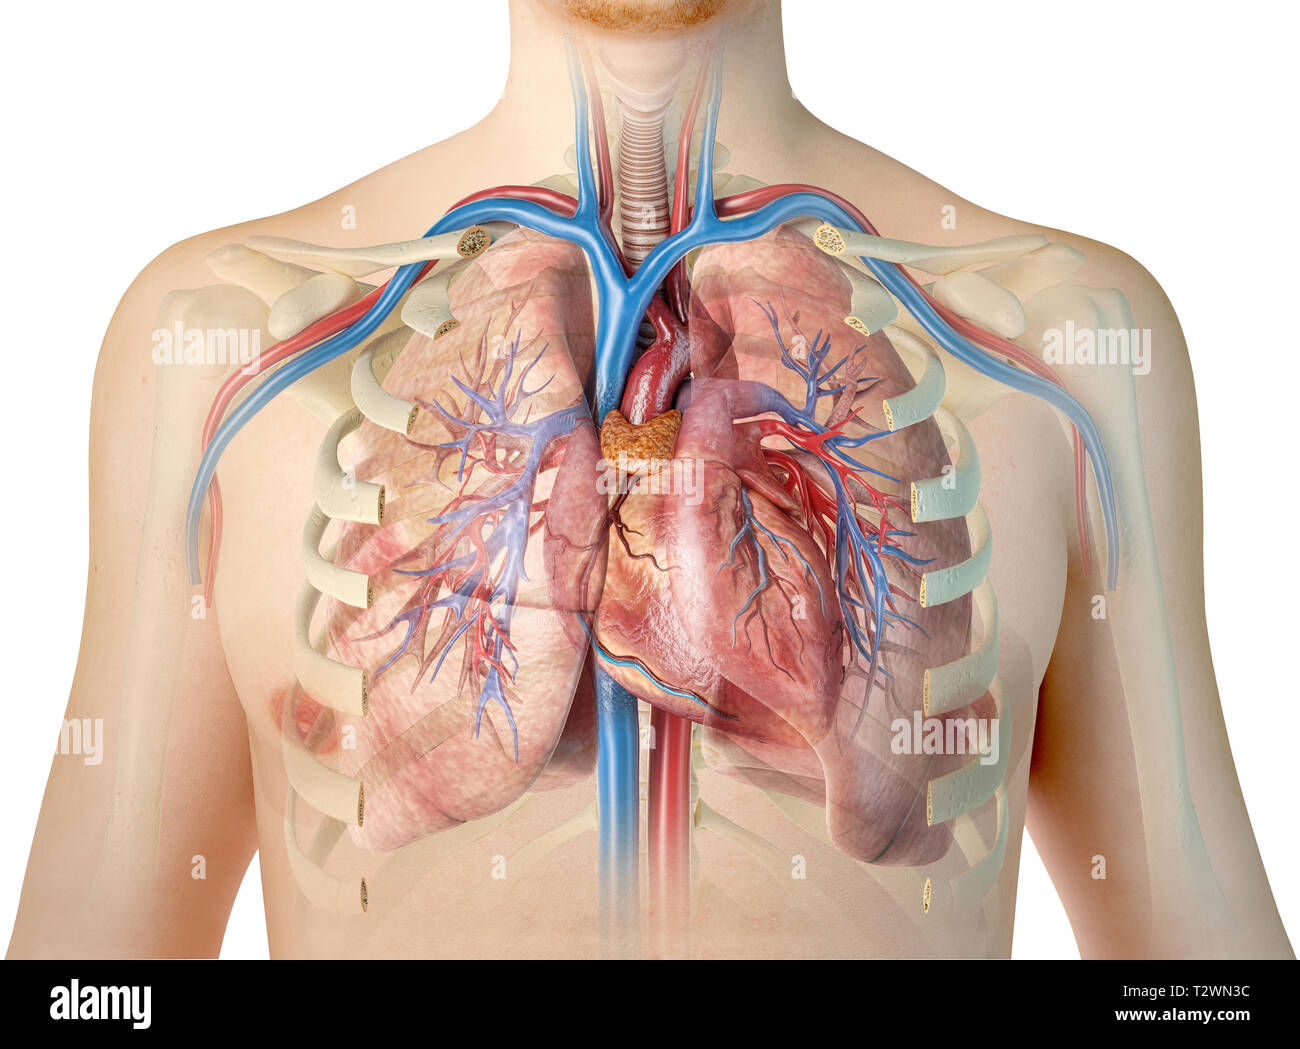 human anatomy of the lungs stock photos human anatomy of. Black Bedroom Furniture Sets. Home Design Ideas